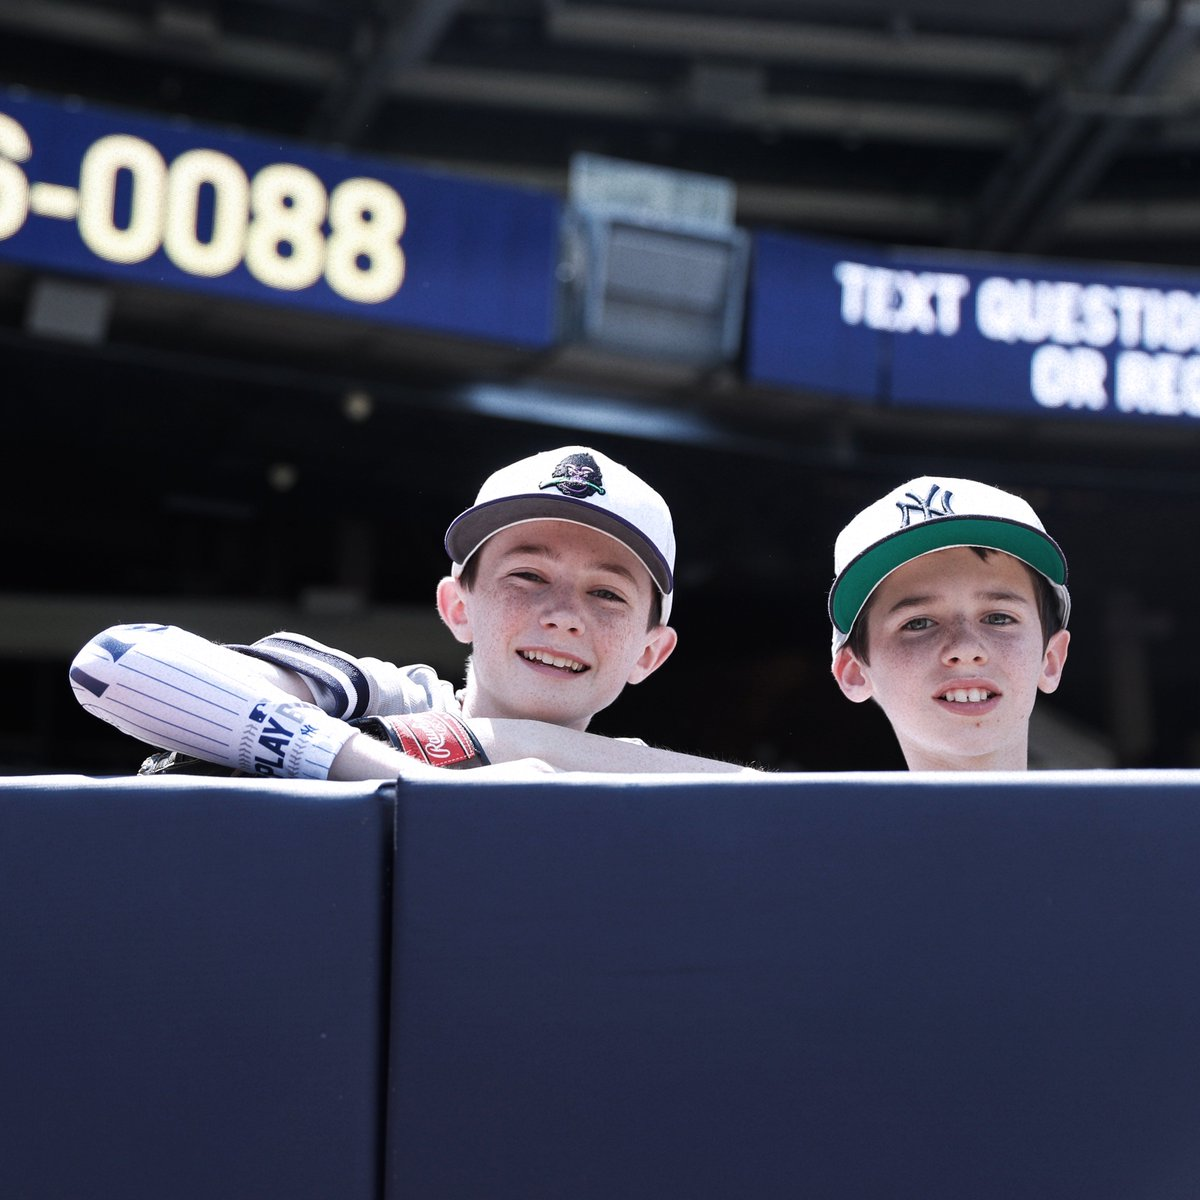 In honor of #PlayBall weekend, the first 10,000 kids, 14 and under, received a Yankees arm sleeve at today's game.